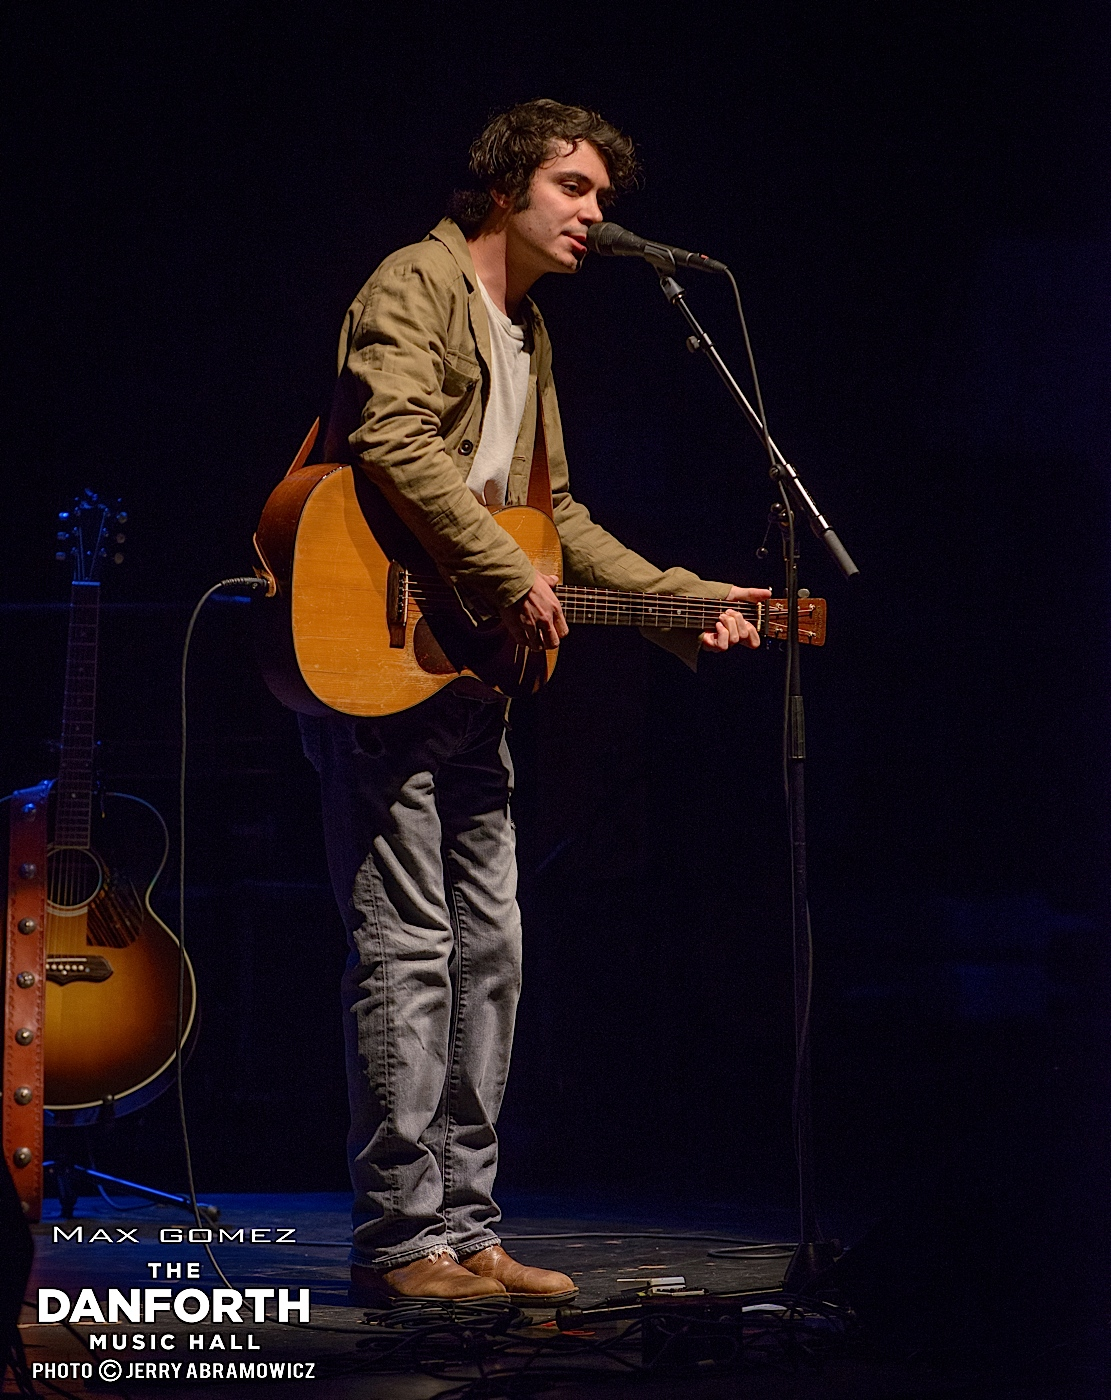 20130611 Max Gomez performs at The Danforth Music Hall Toronto 0003